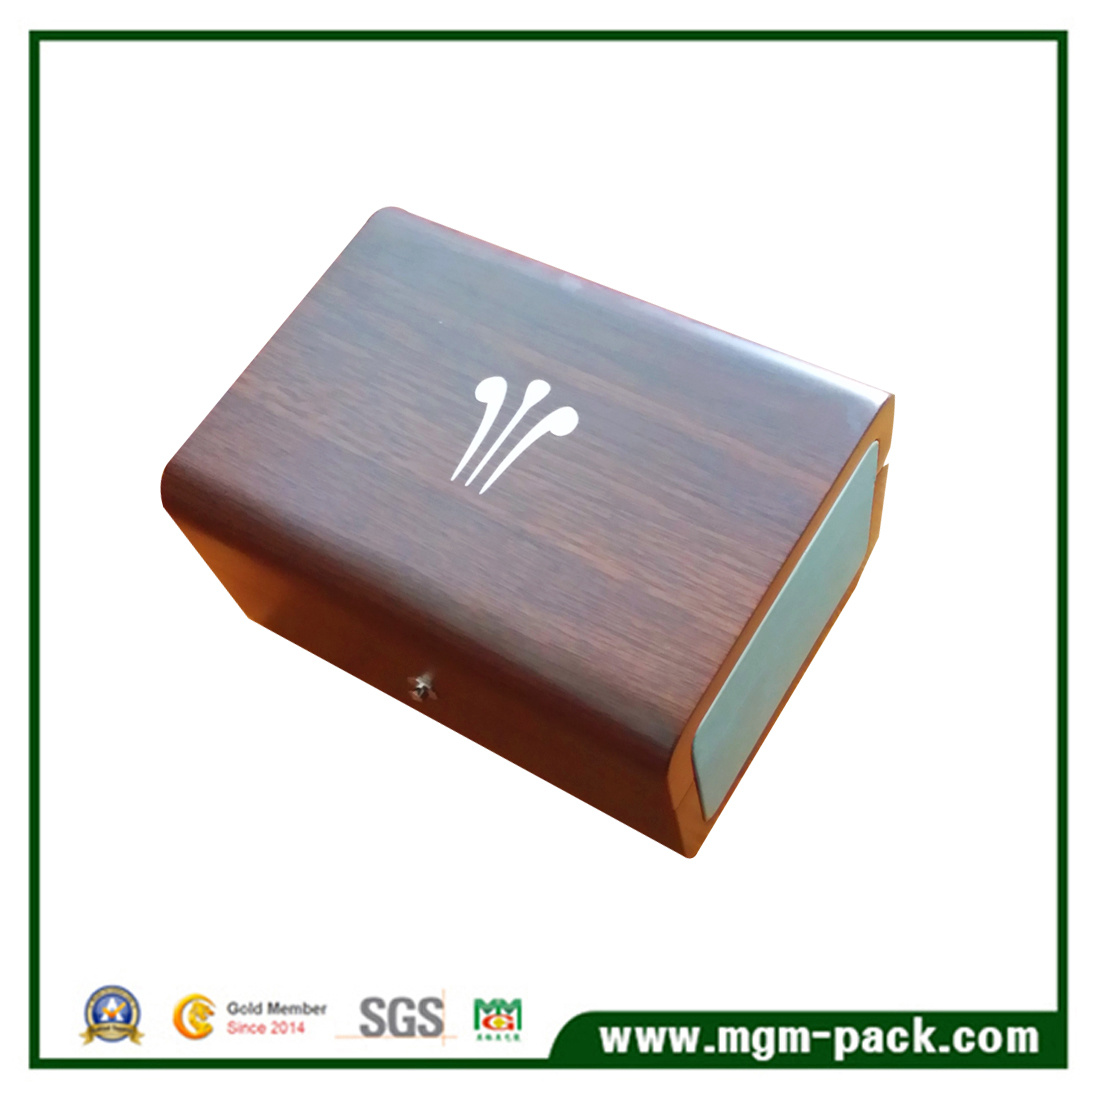 Fancy Matt Single China Wooden Watch Box